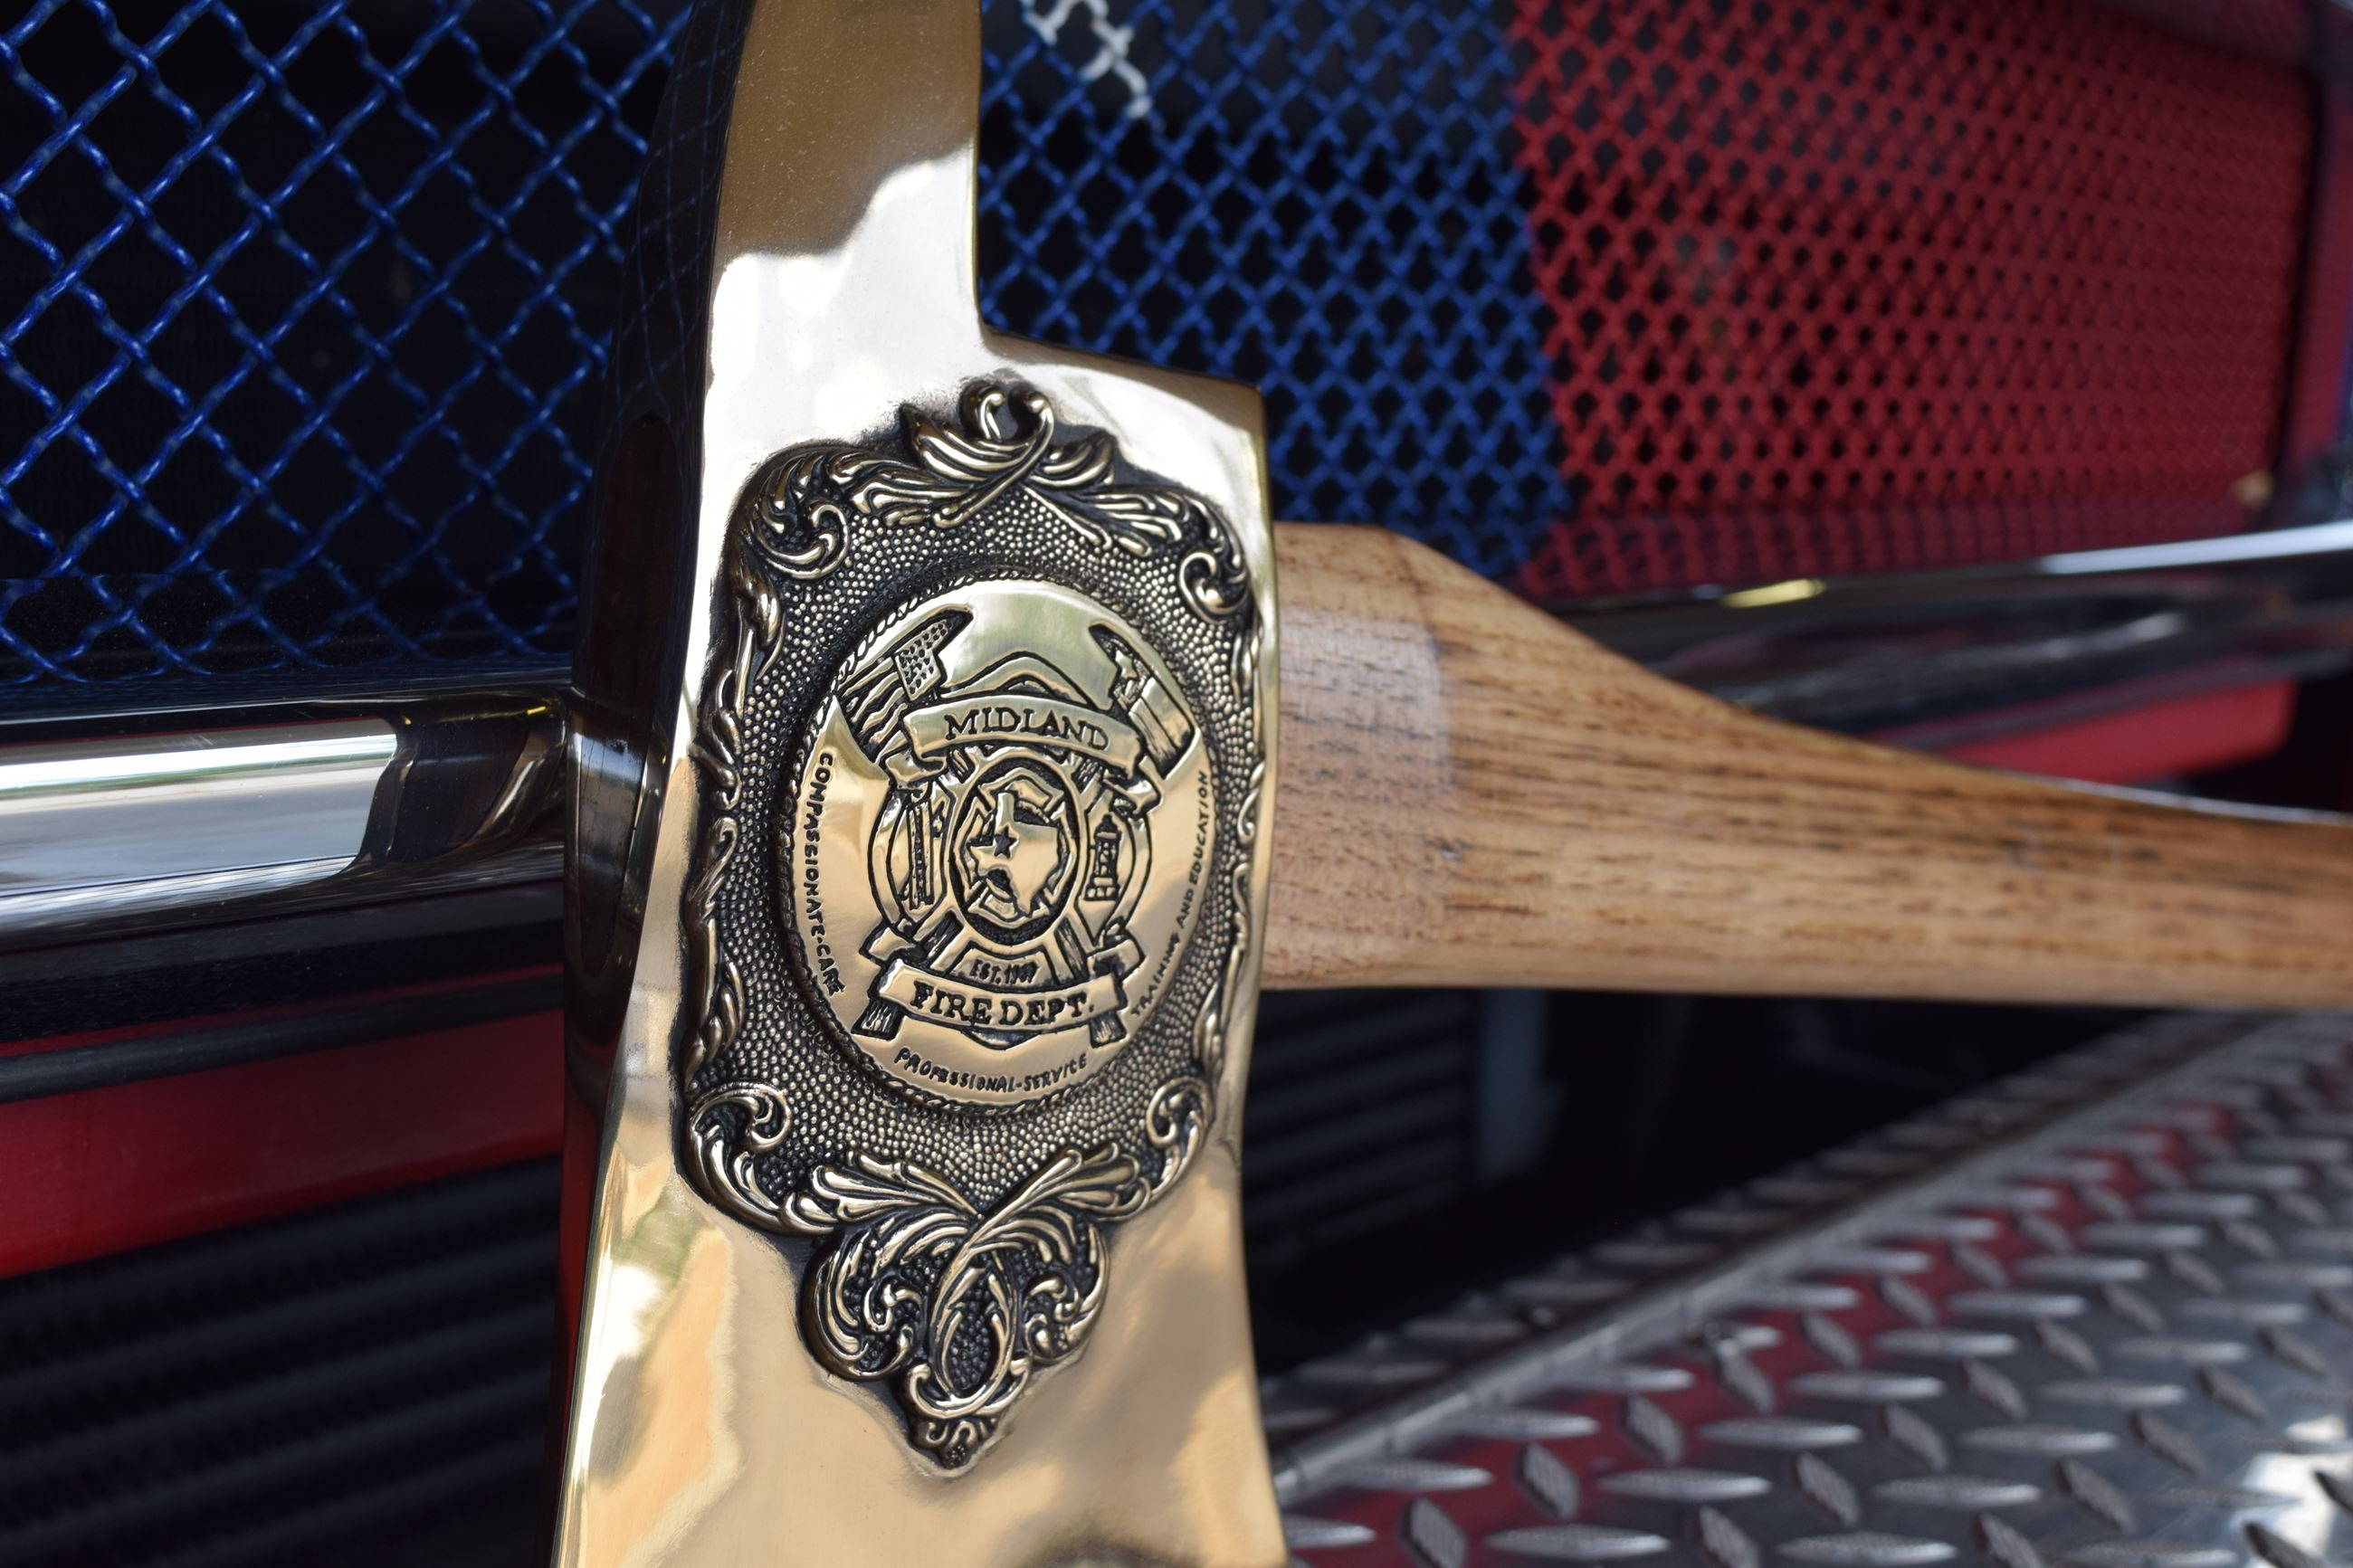 Midland Fire Department | Midland, TX - Official Website